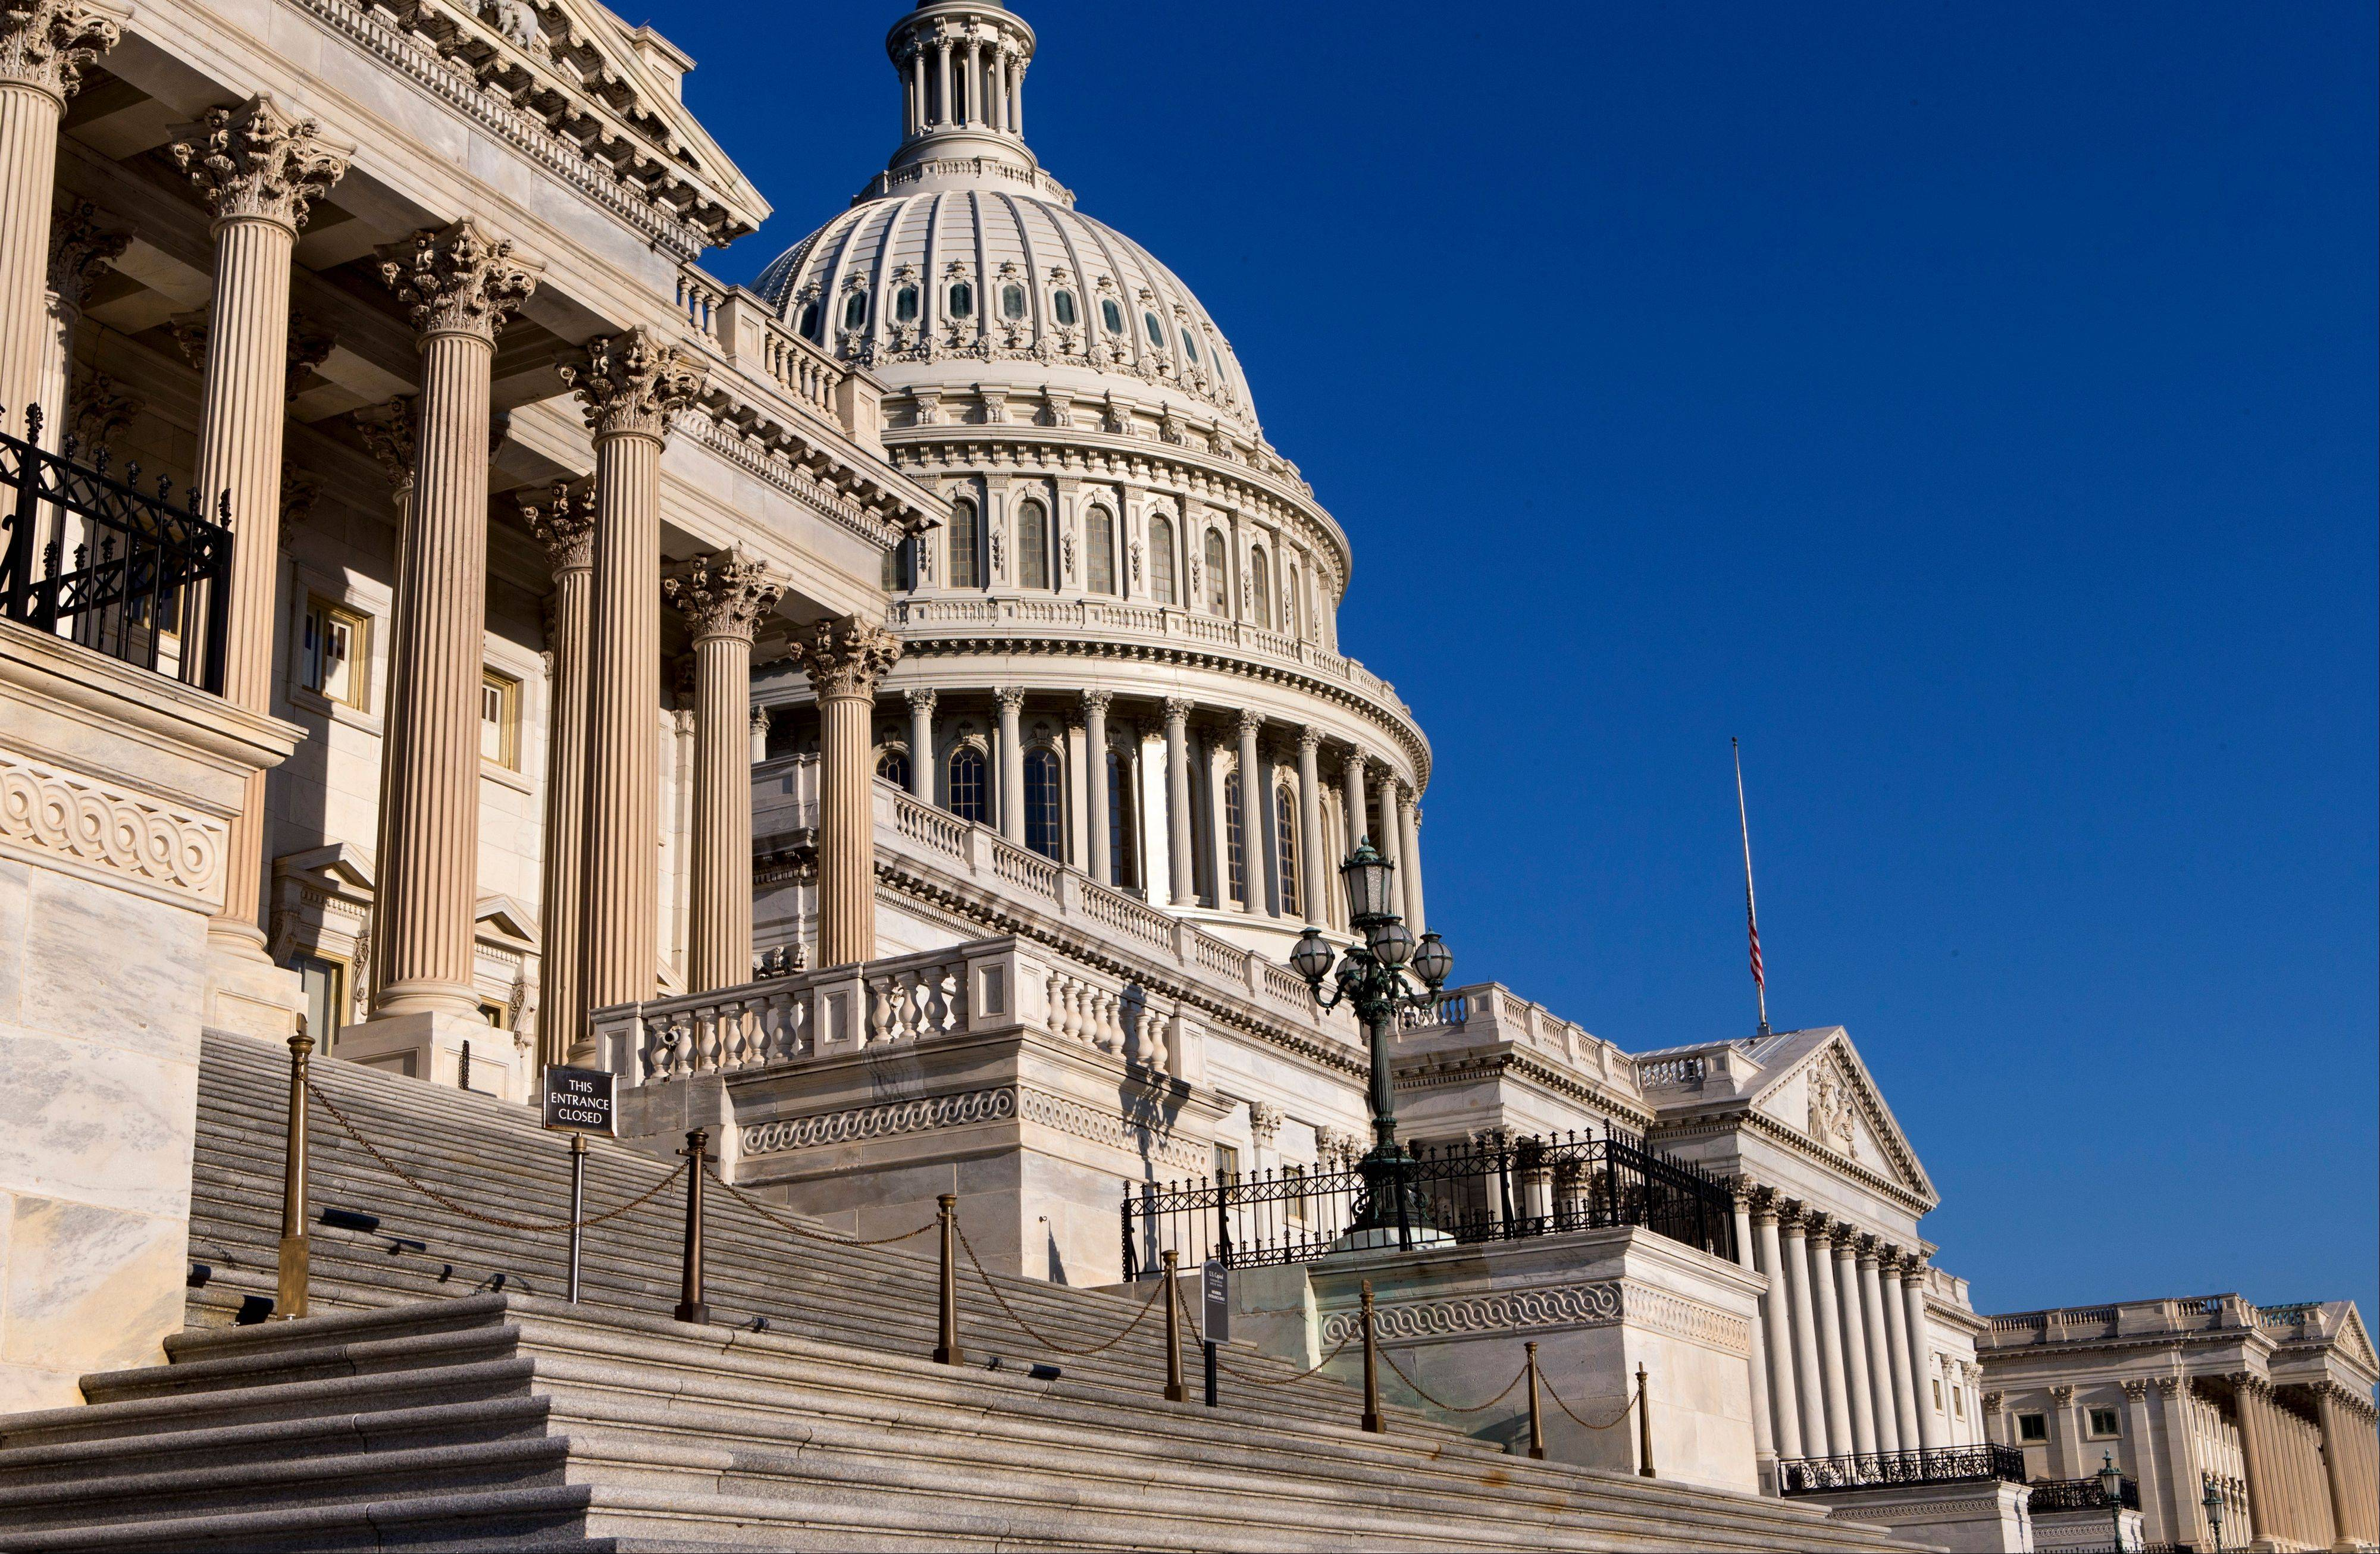 Investors aren't finding any stability in a divided and divisive Congress, and the markets are reflecting their angst.